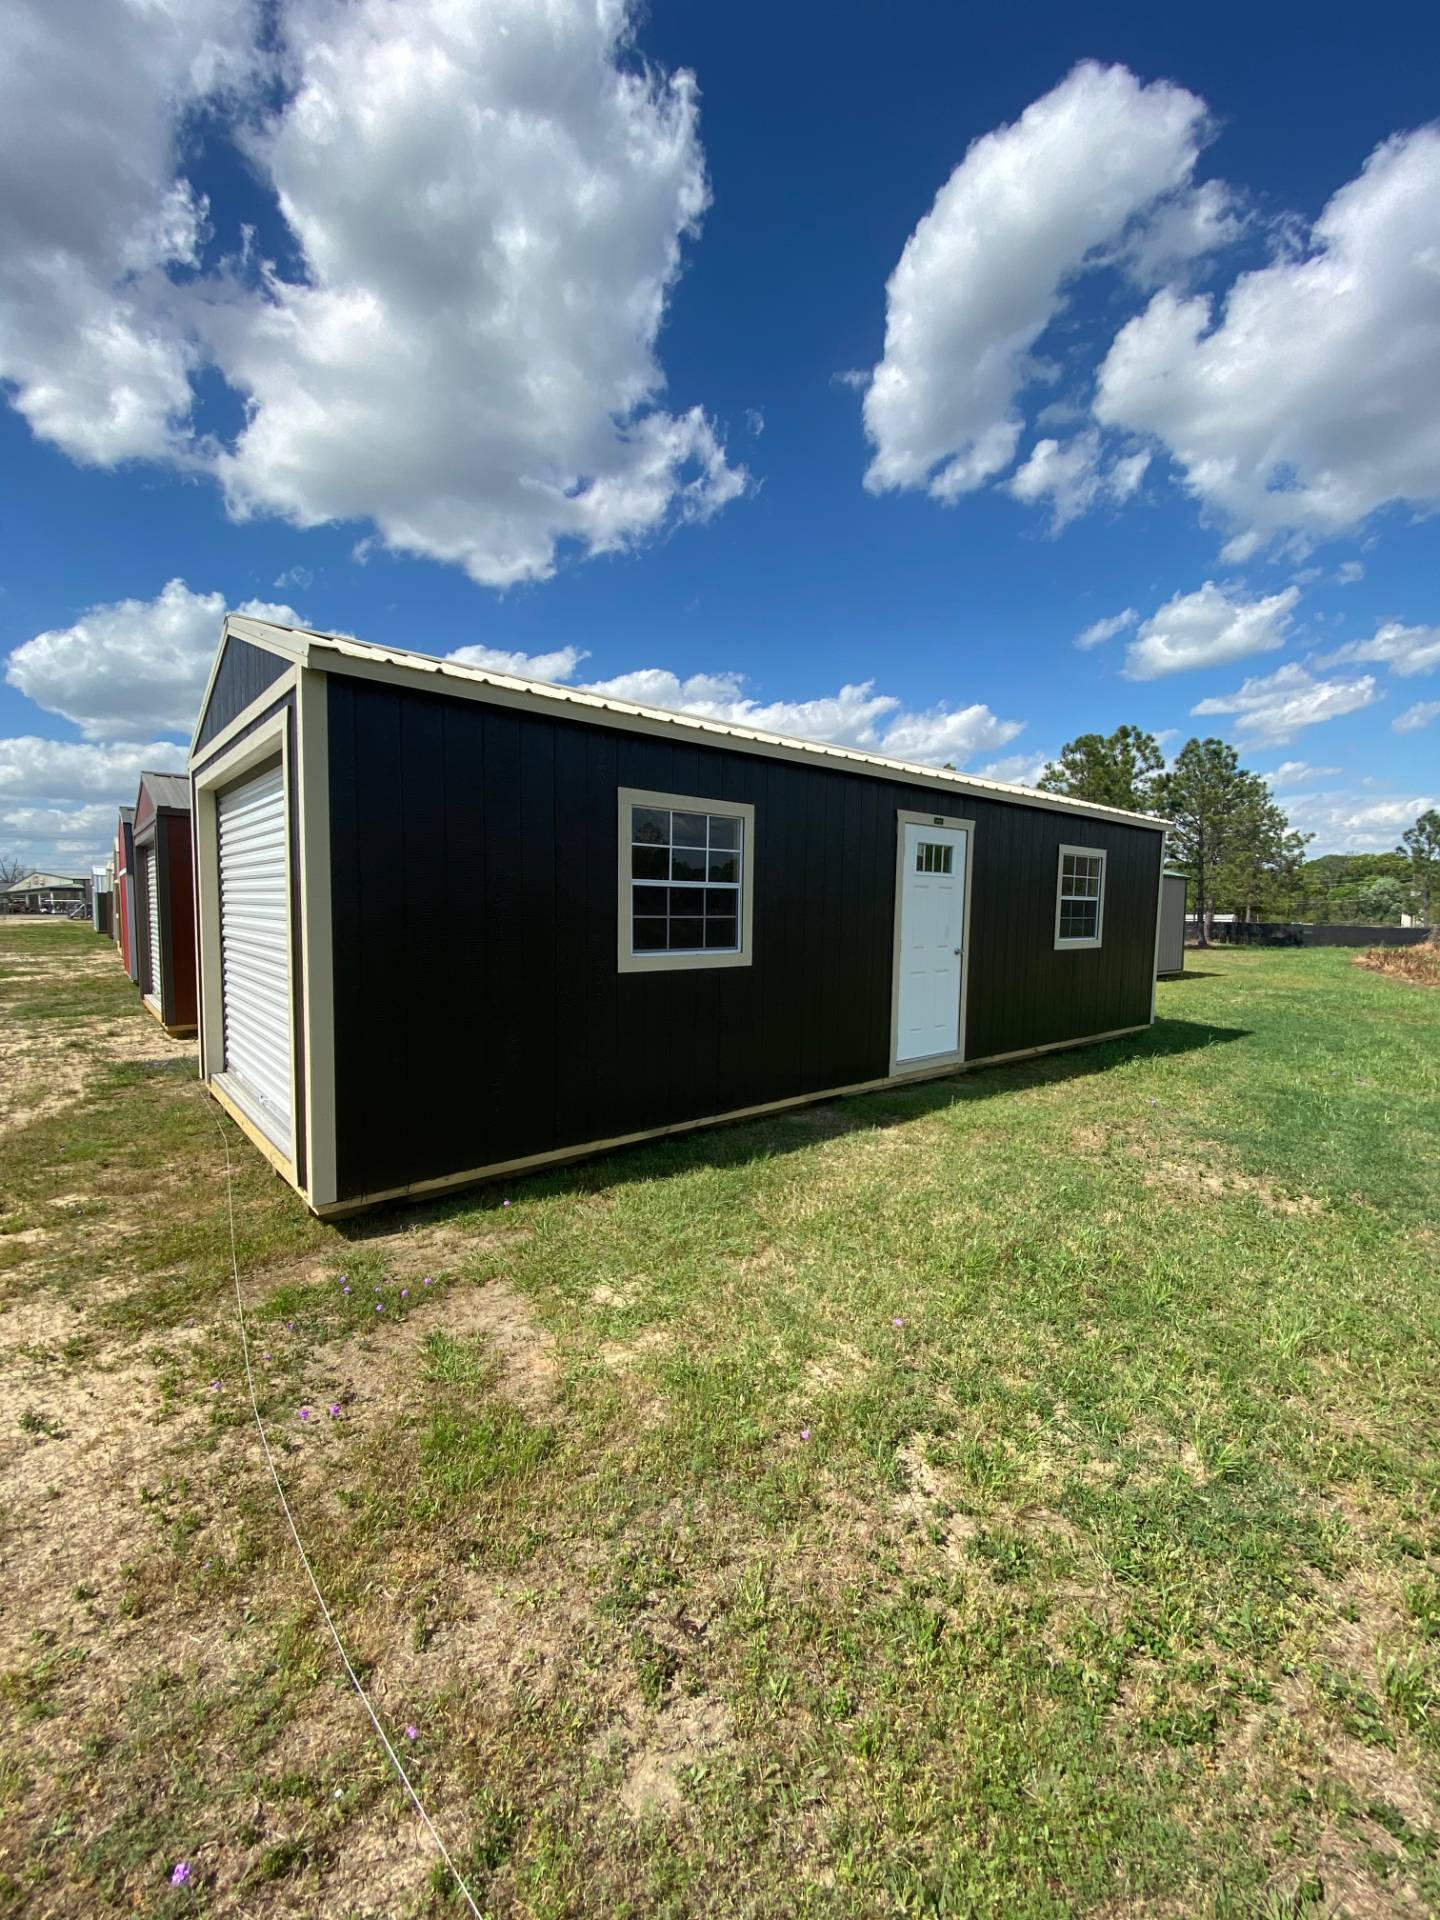 2019 PREMIER PORTABLE BUILDINGS UPG- 103849-1232-030320 in Tifton, Georgia - Photo 1